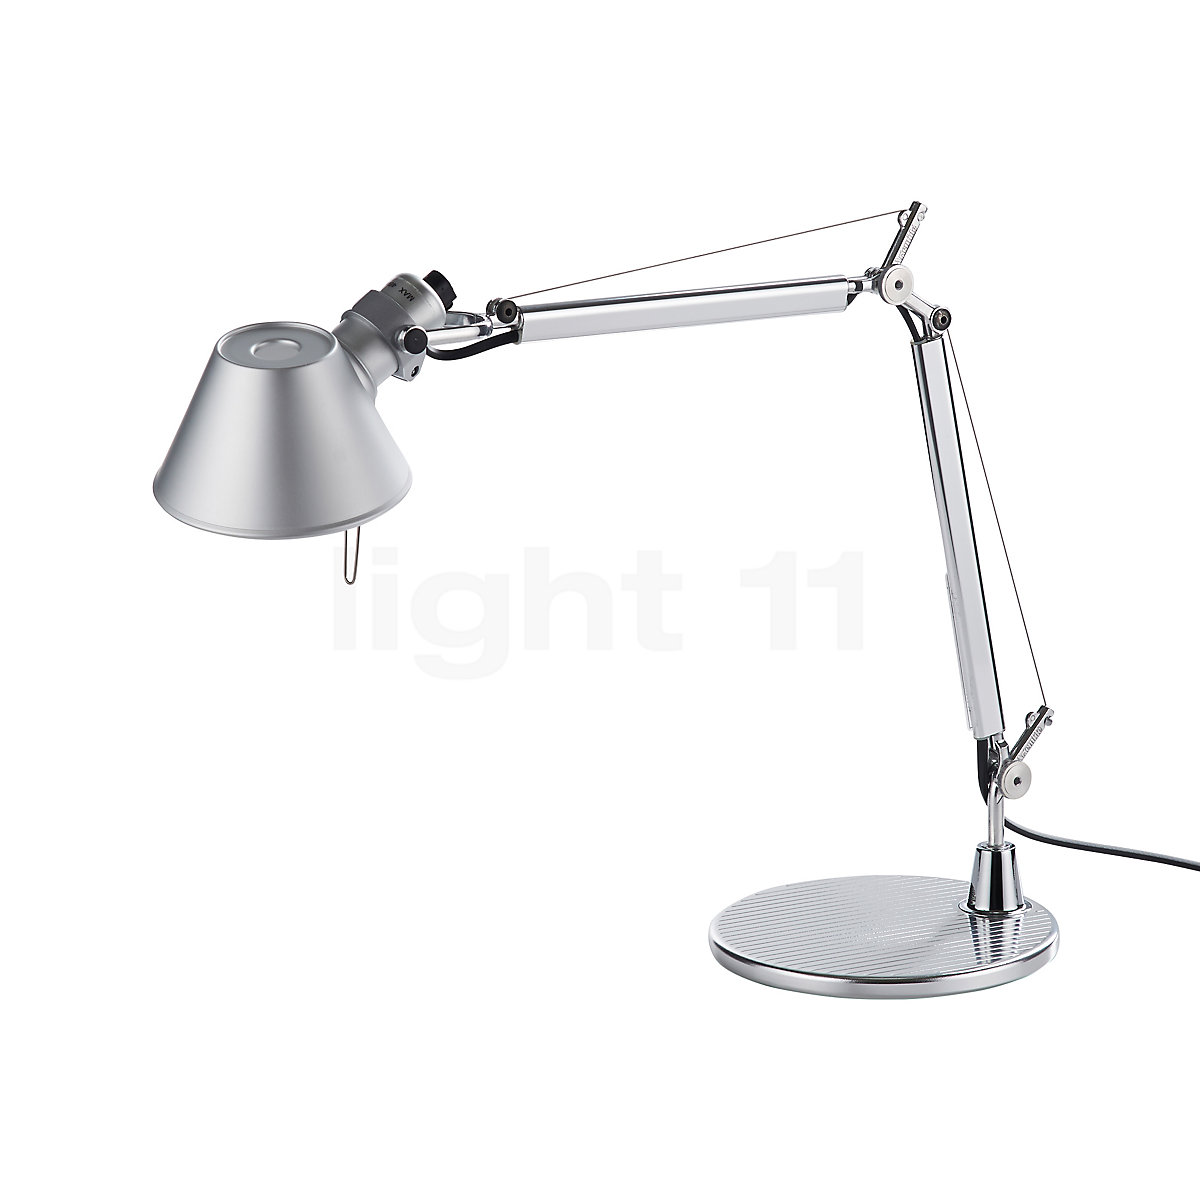 Artemide Lamp Repair Lamp Design Ideas